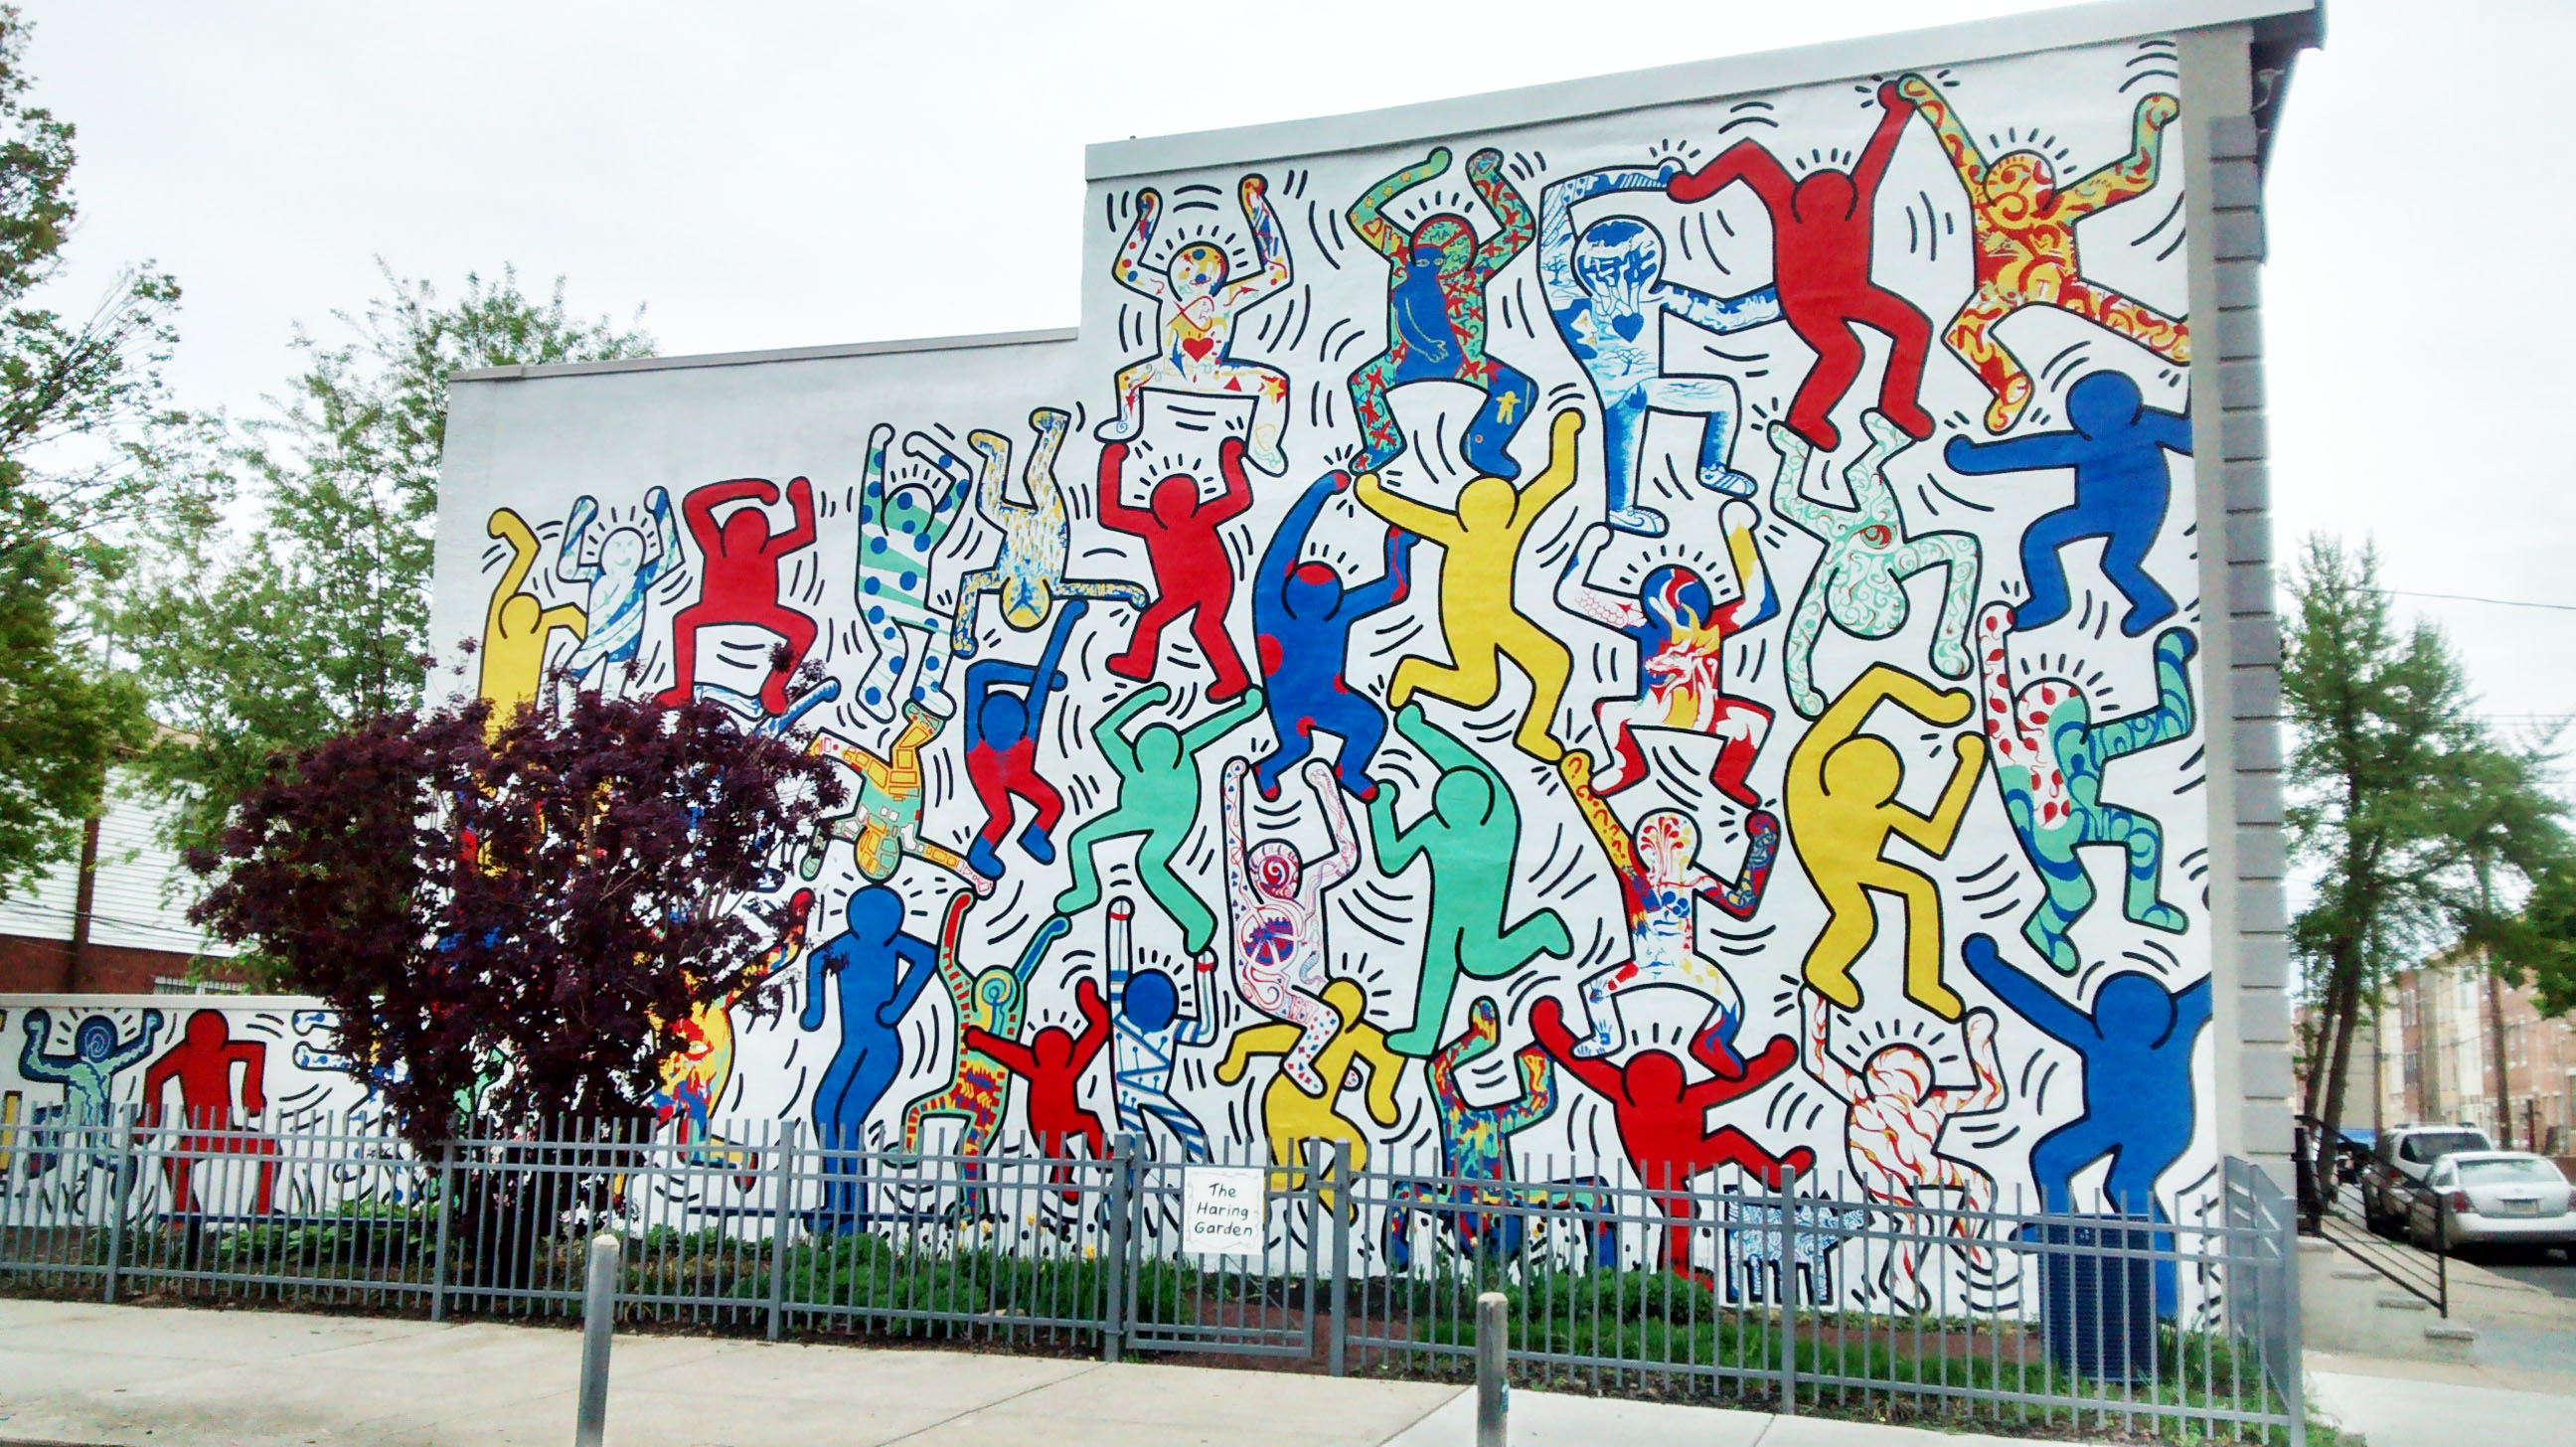 Mostre milano 2017 a palazzo reale arriva keith haring for Mostre palazzo reale 2015